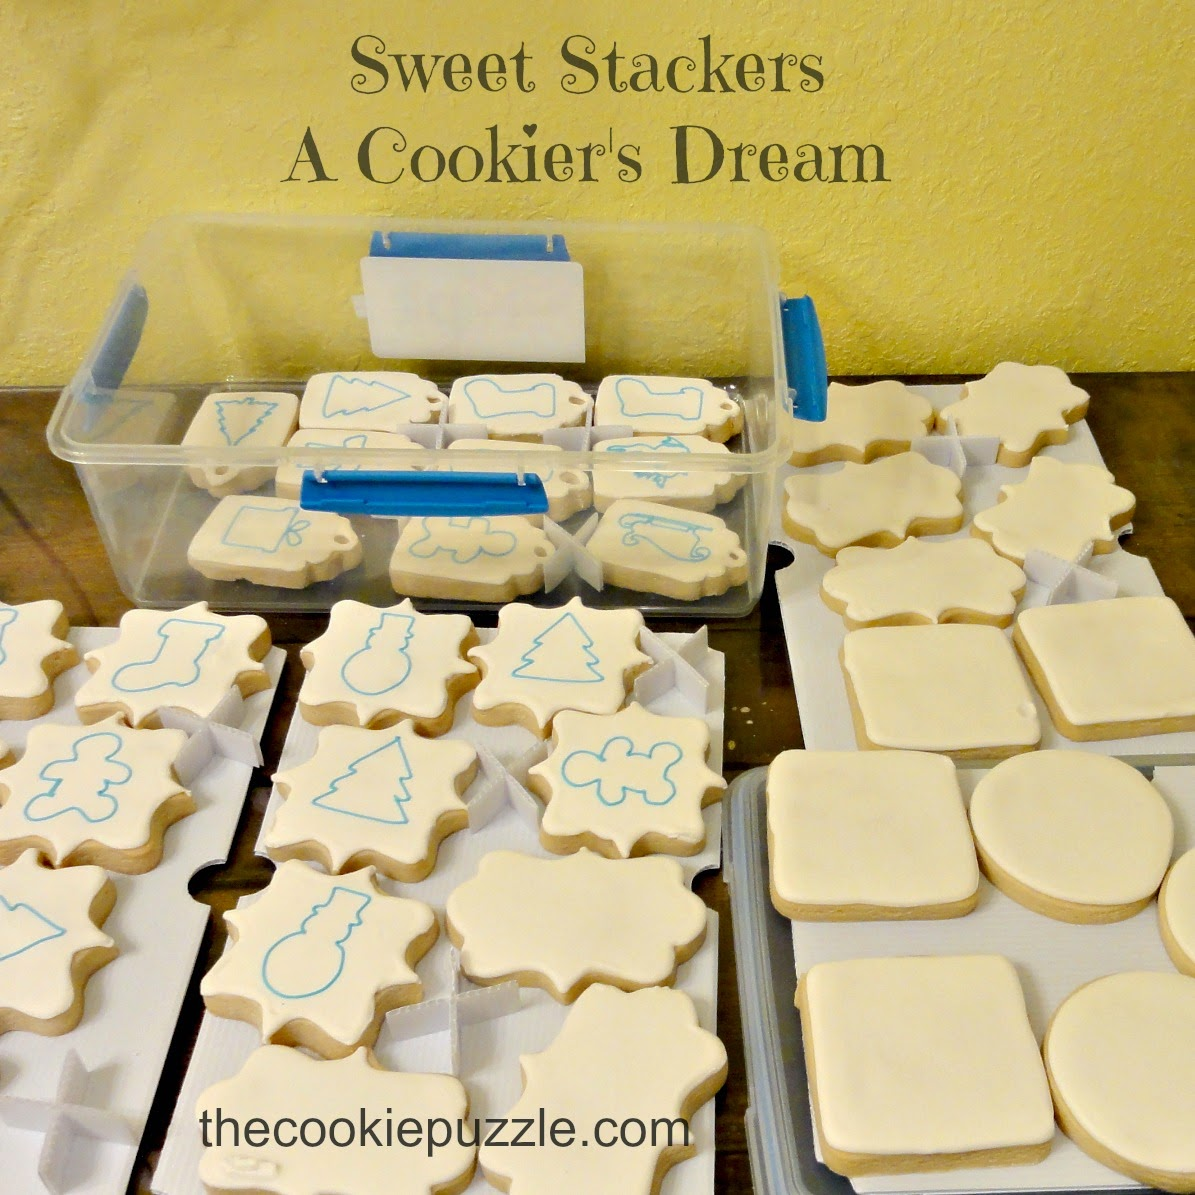 Sweet Stackers: A Cookier's Dream